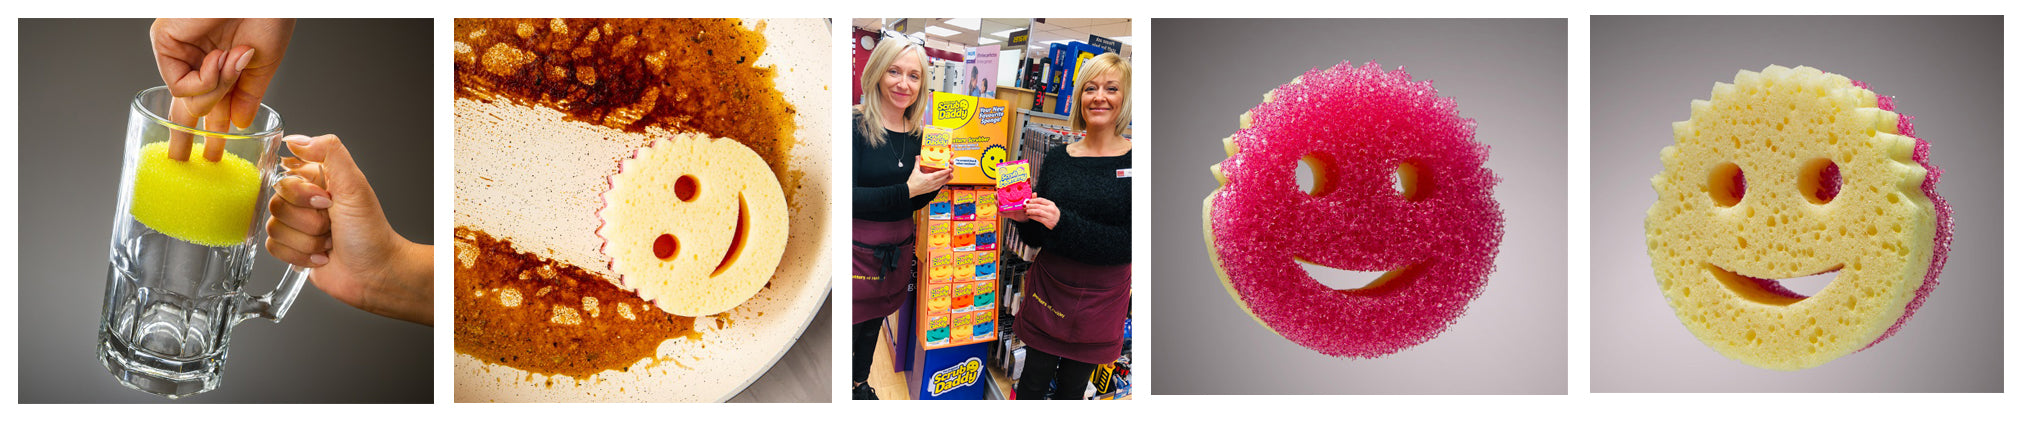 Buy Scrub Daddy Scrub Mommy at Potters Cookshop Essex